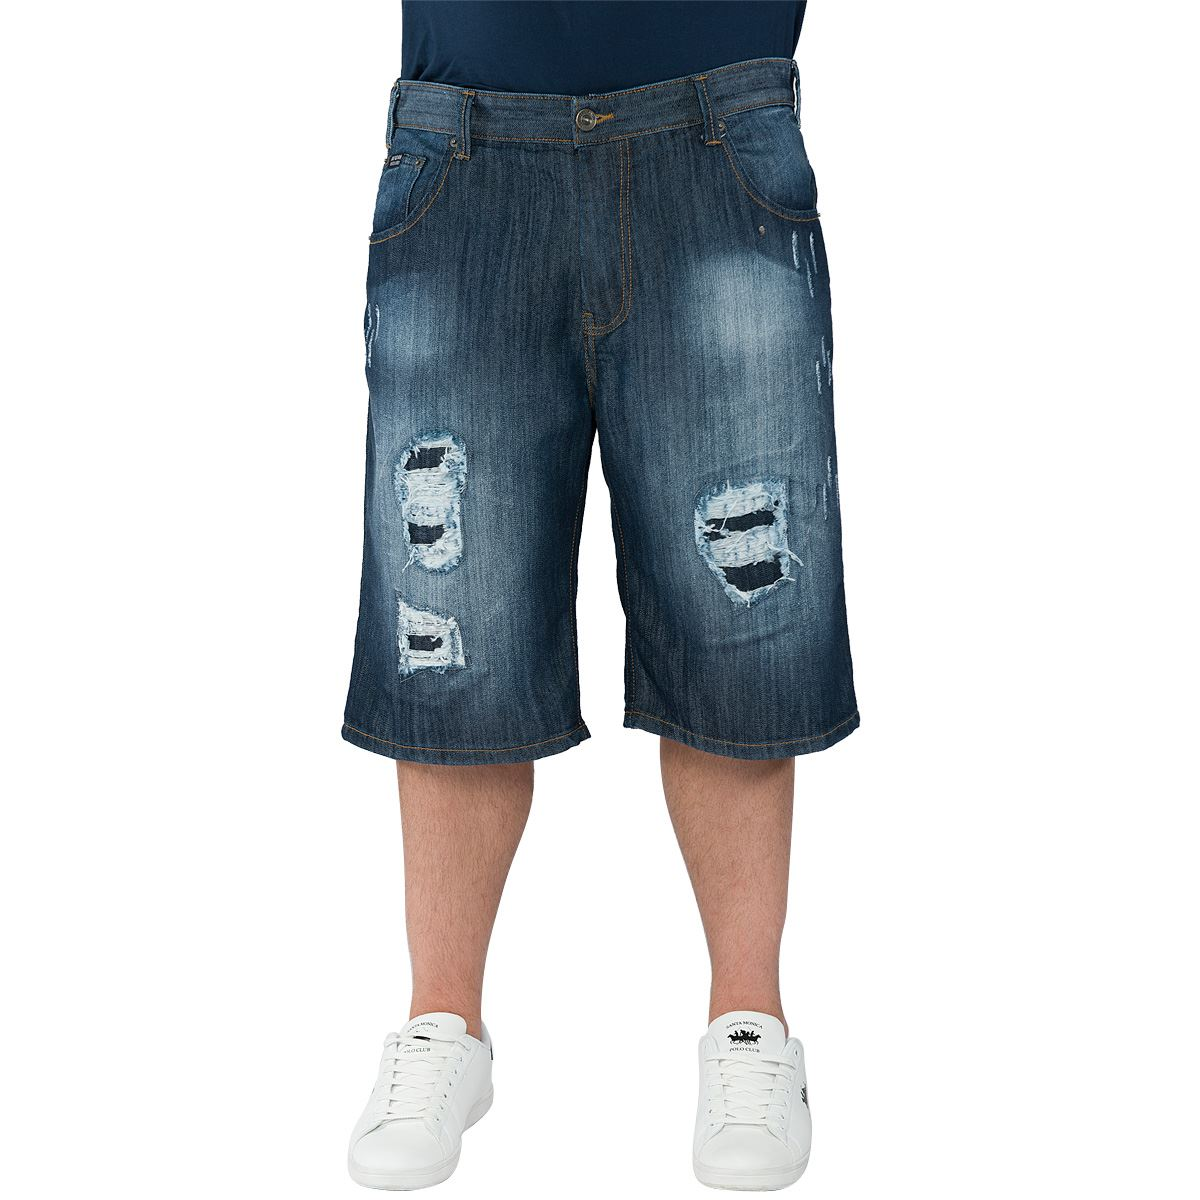 Buy low price, high quality mens distressed shorts with worldwide shipping on appzdnatw.cf